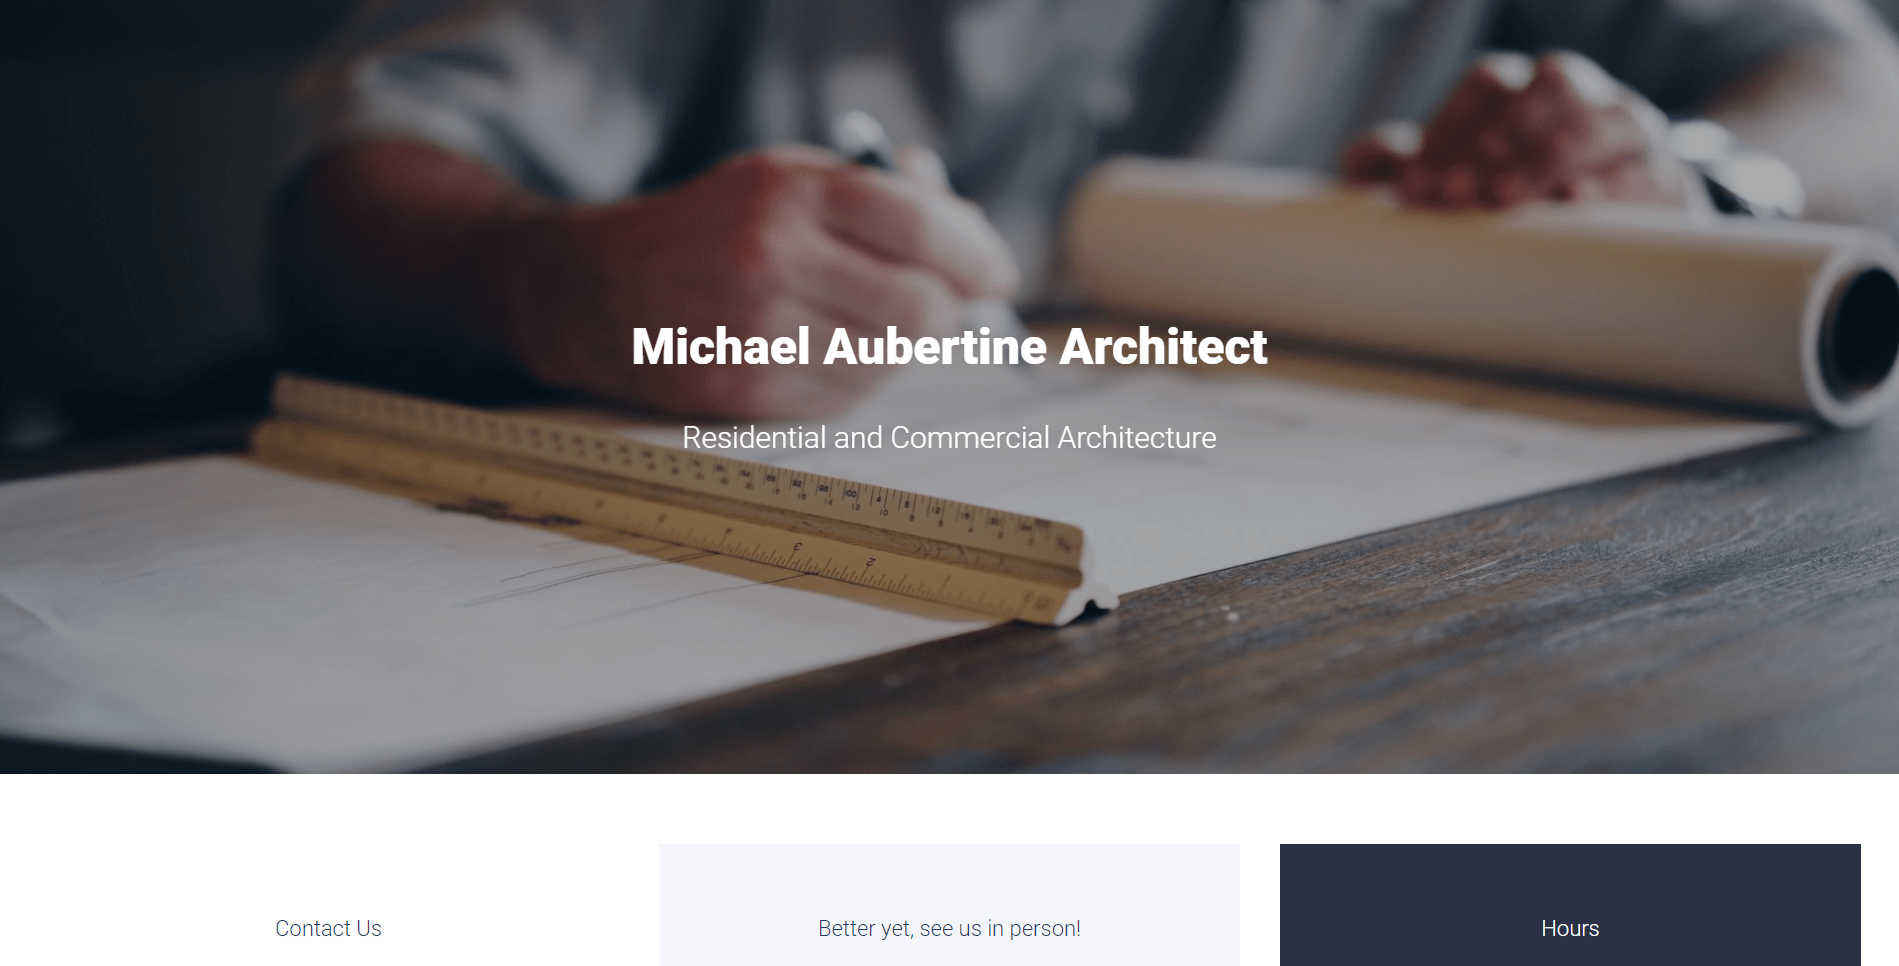 Aubertine Architect